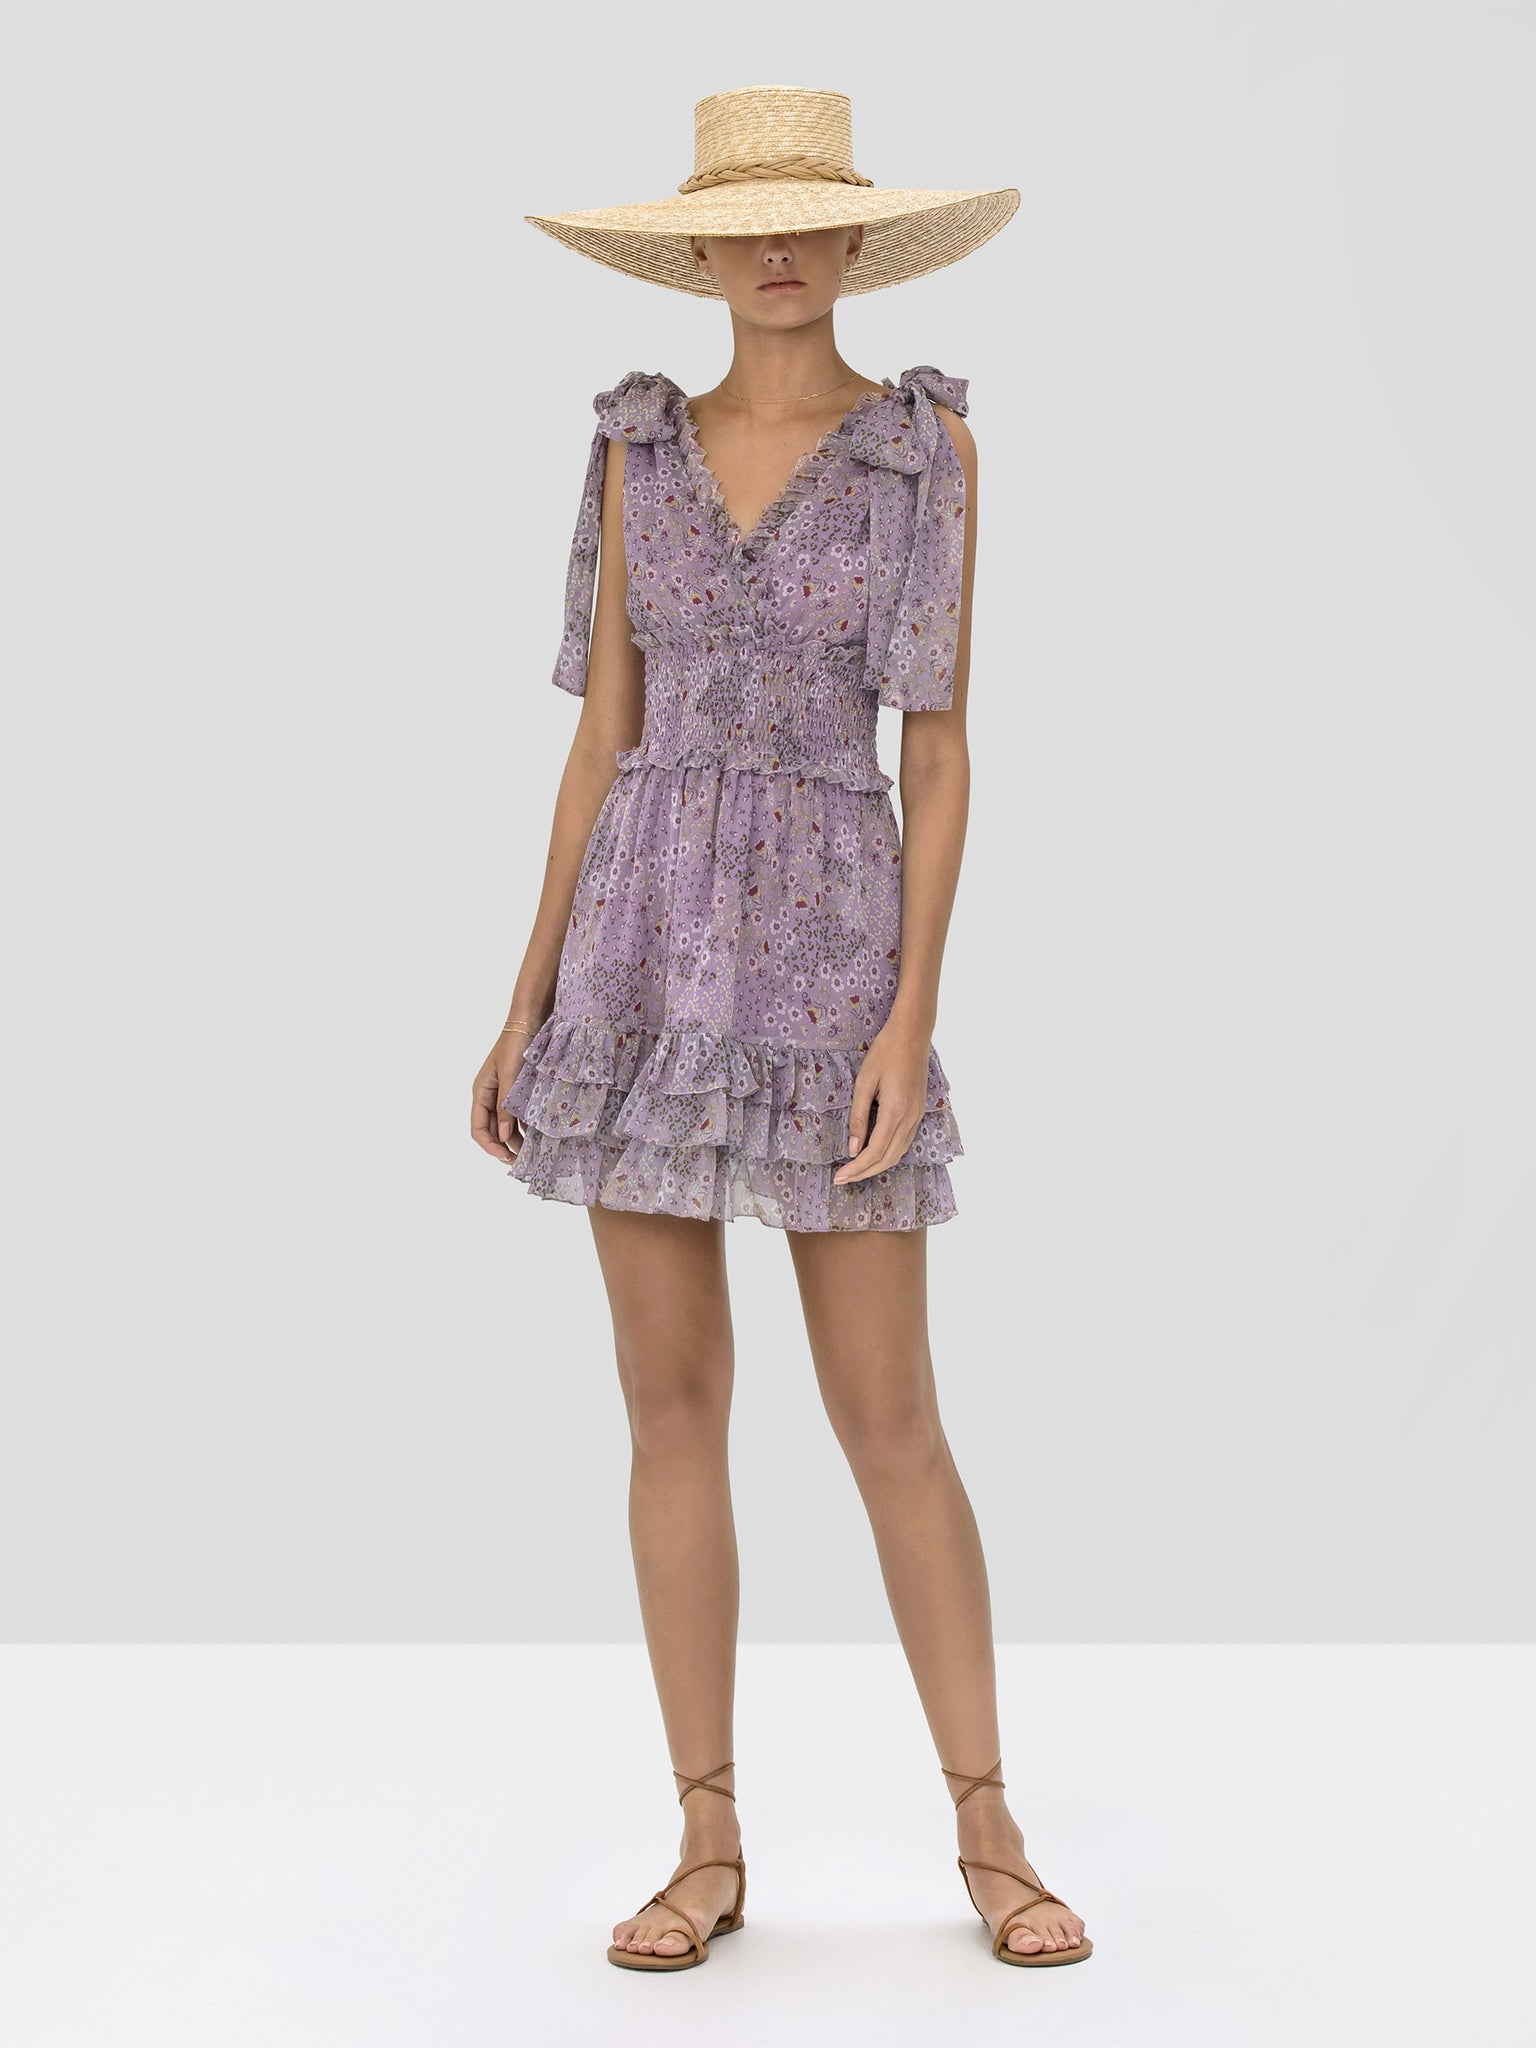 The Tandie Dress in Purple Bouquet from the Spring Summer 2020